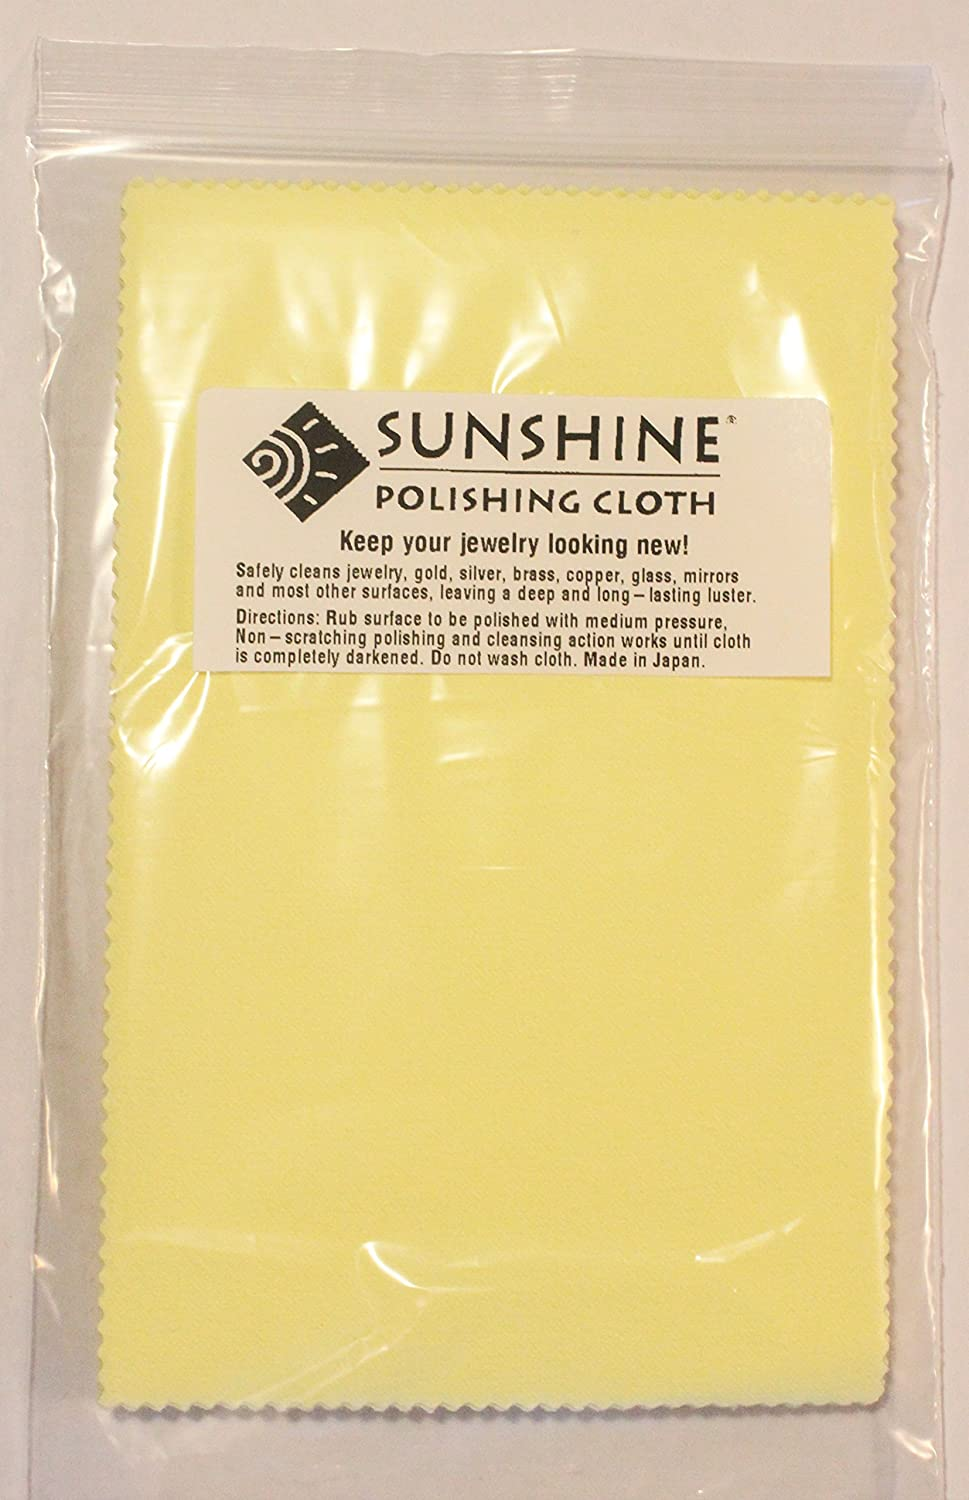 10 Sunshine Silver Polishing Cloth for Sterling Silver, Gold, Brass and Copper Jewelry Polishing Cloth 8132GoBftqL